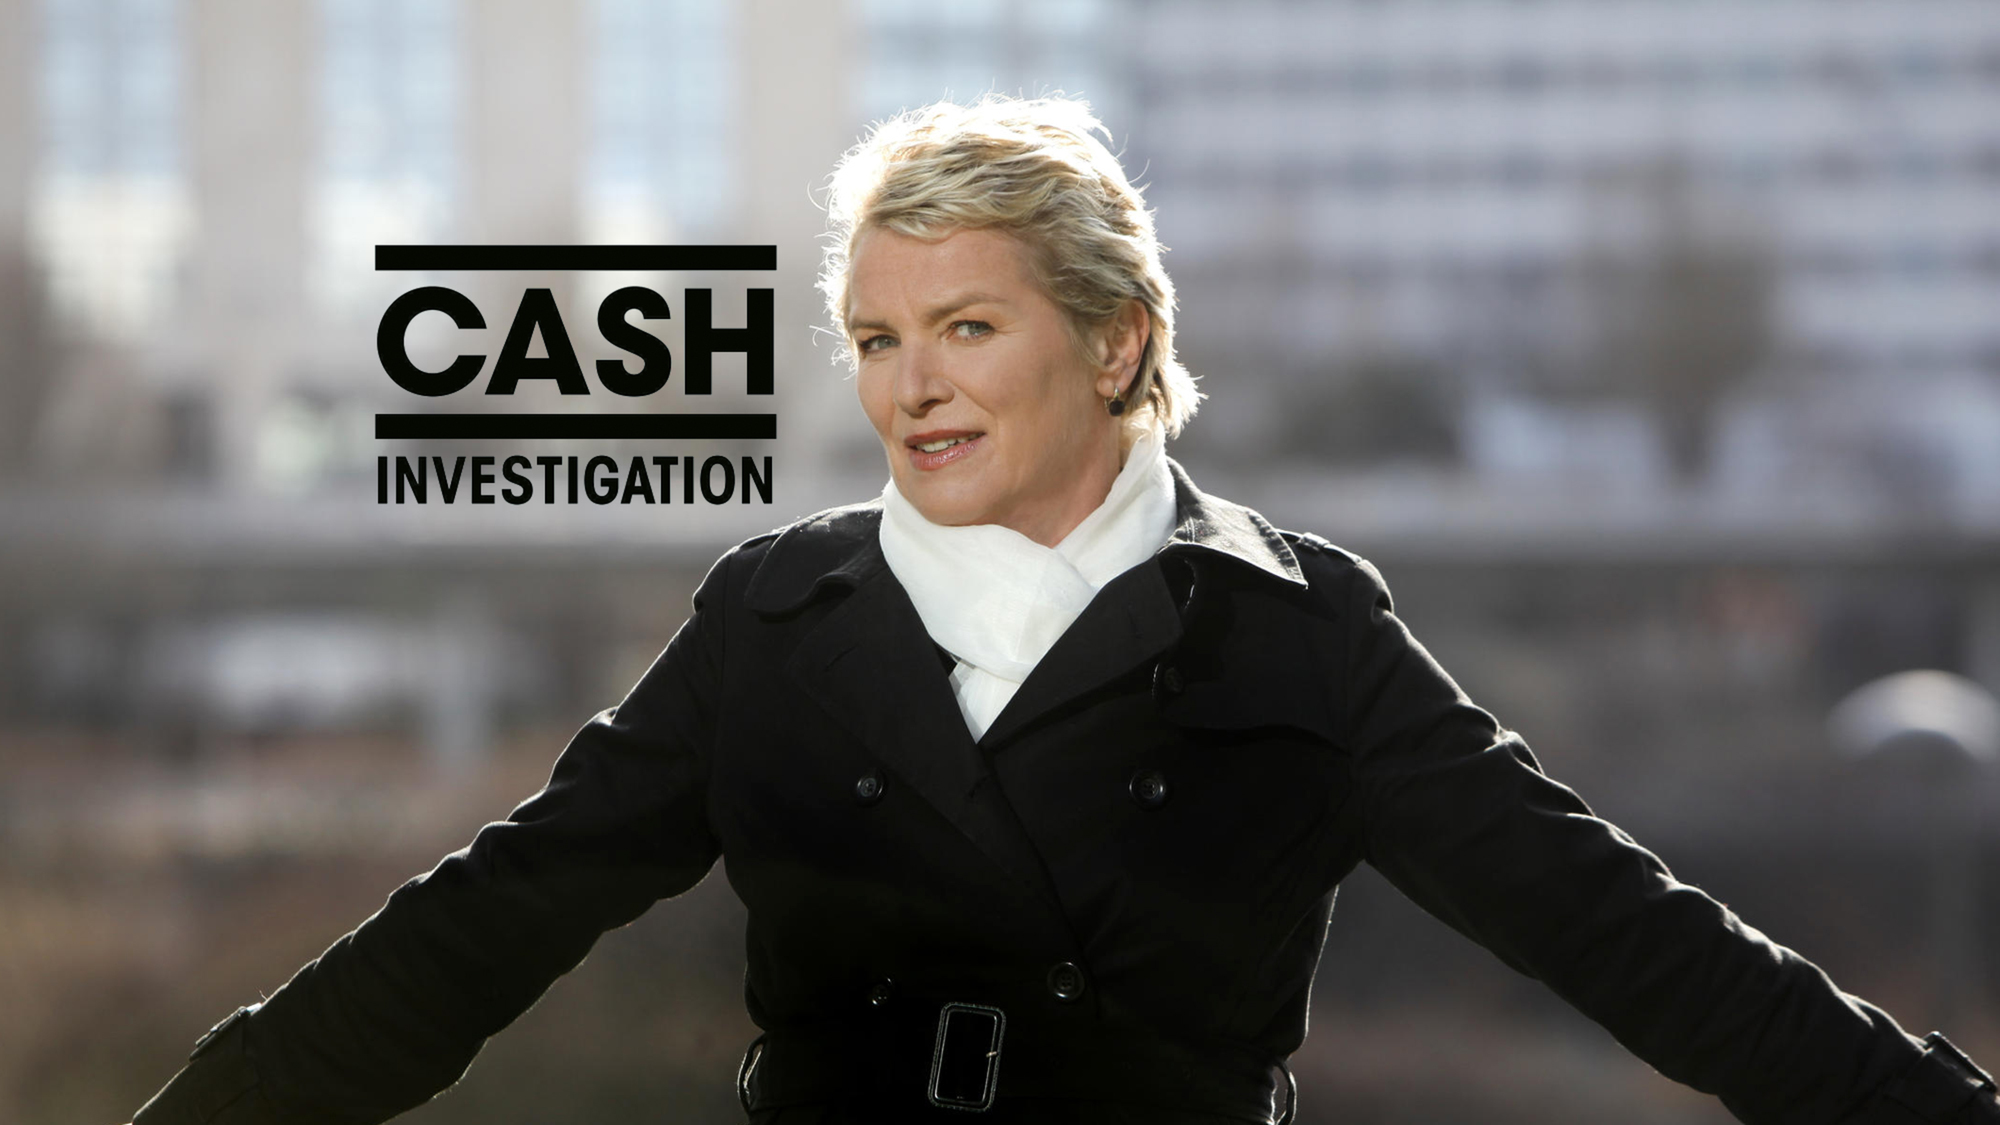 Mardi 09 octobre à 21h00 sur France 2 : Cash investigation